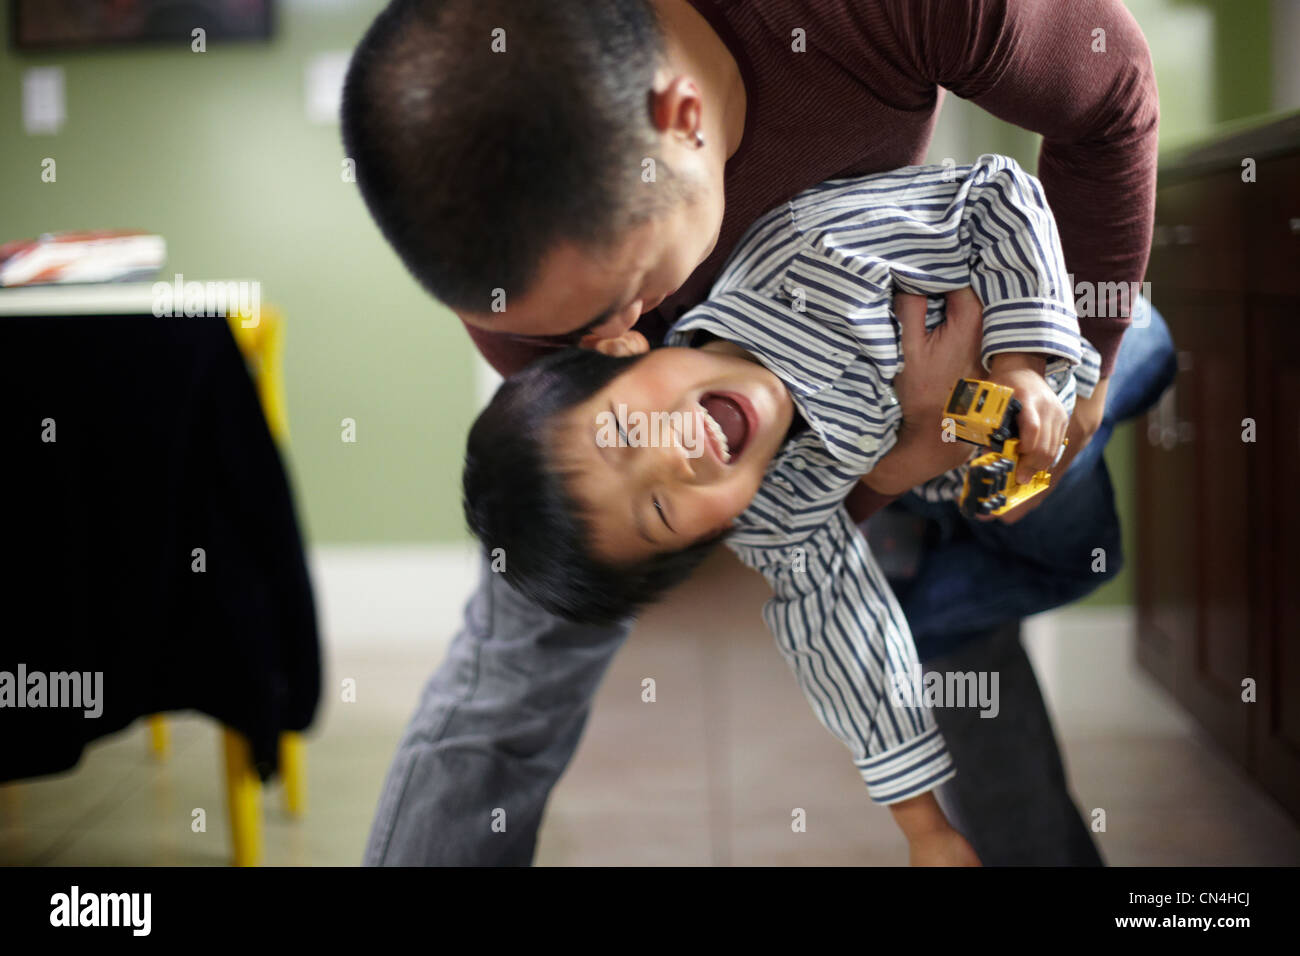 Man and boy playing Photo Stock